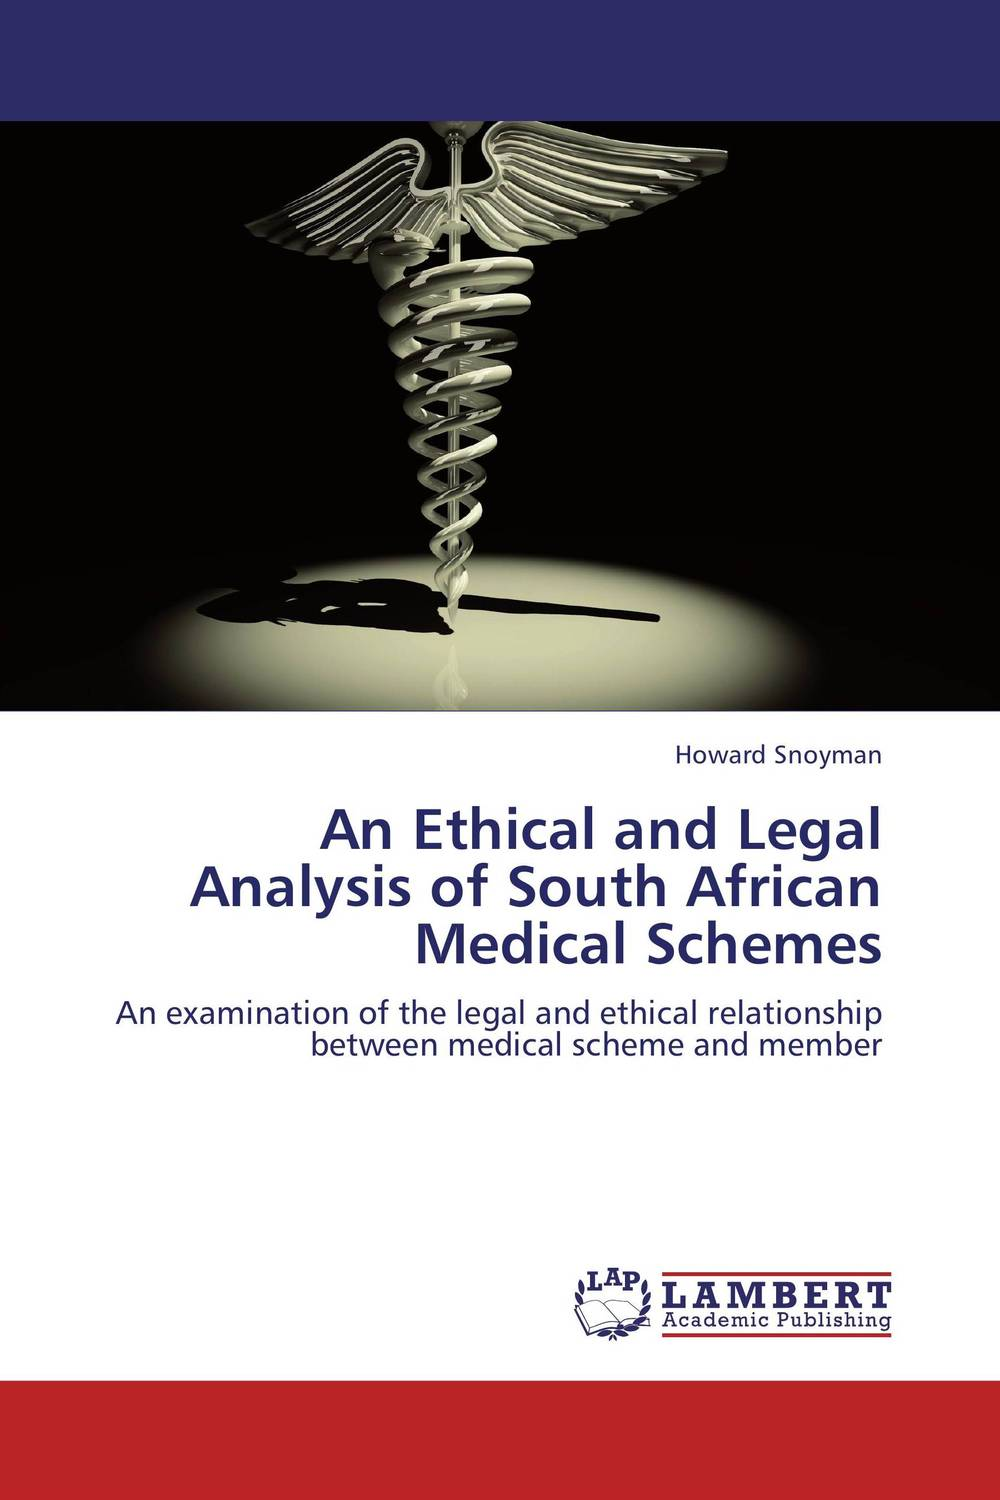 An Ethical and Legal Analysis of South African Medical Schemes